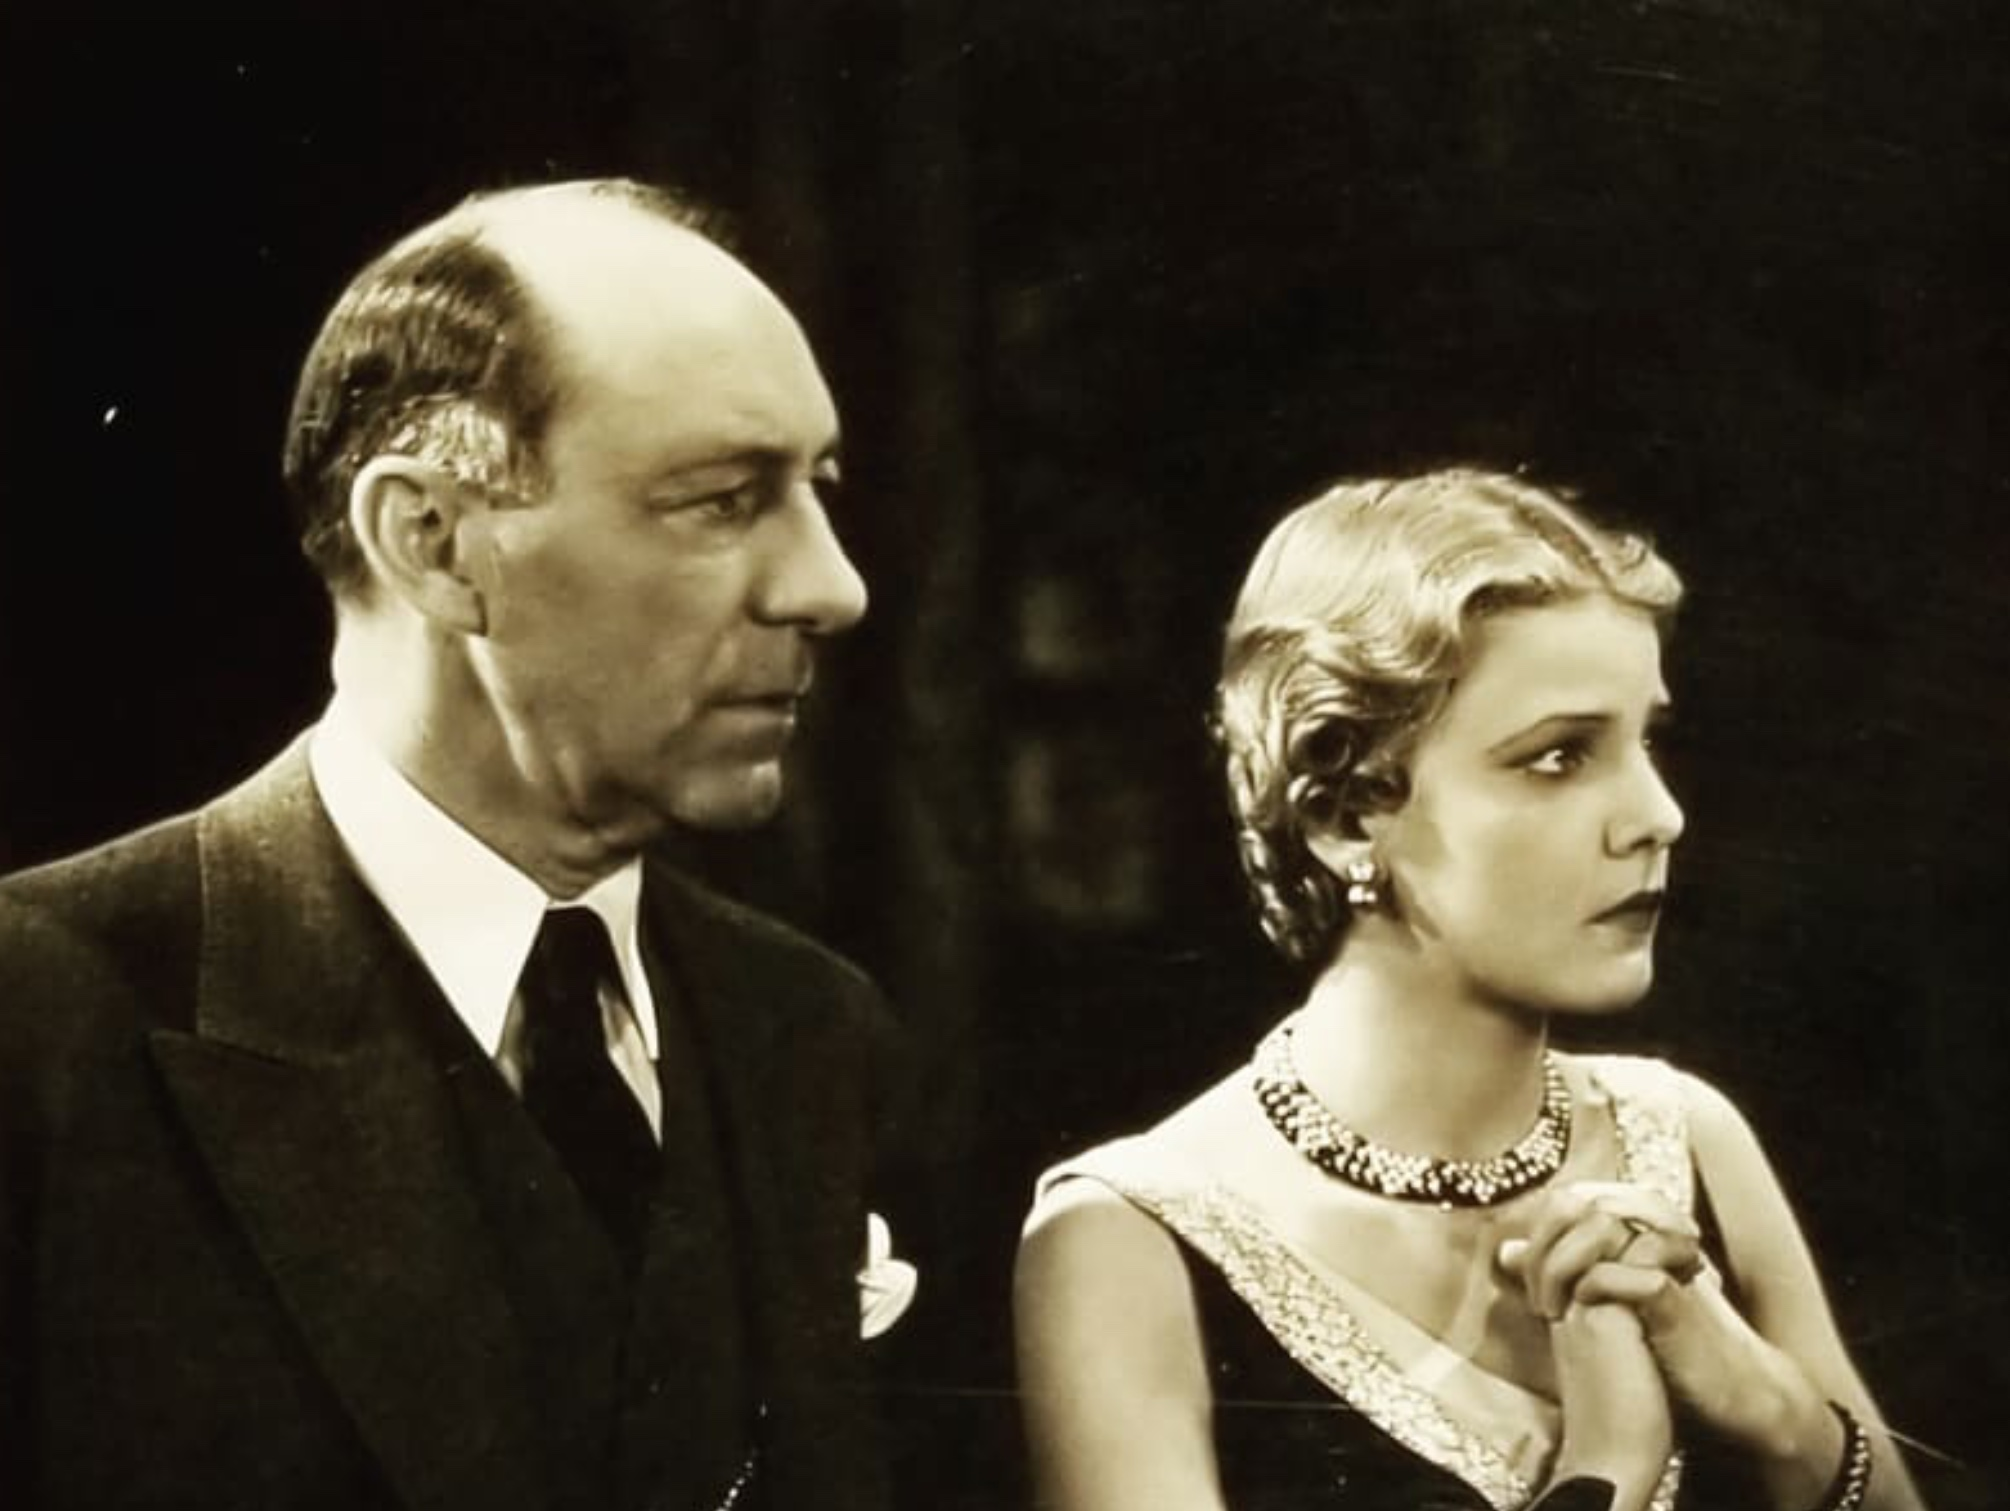 Lumsden Hare and Elissa Landi in Always Goodbye (1931)